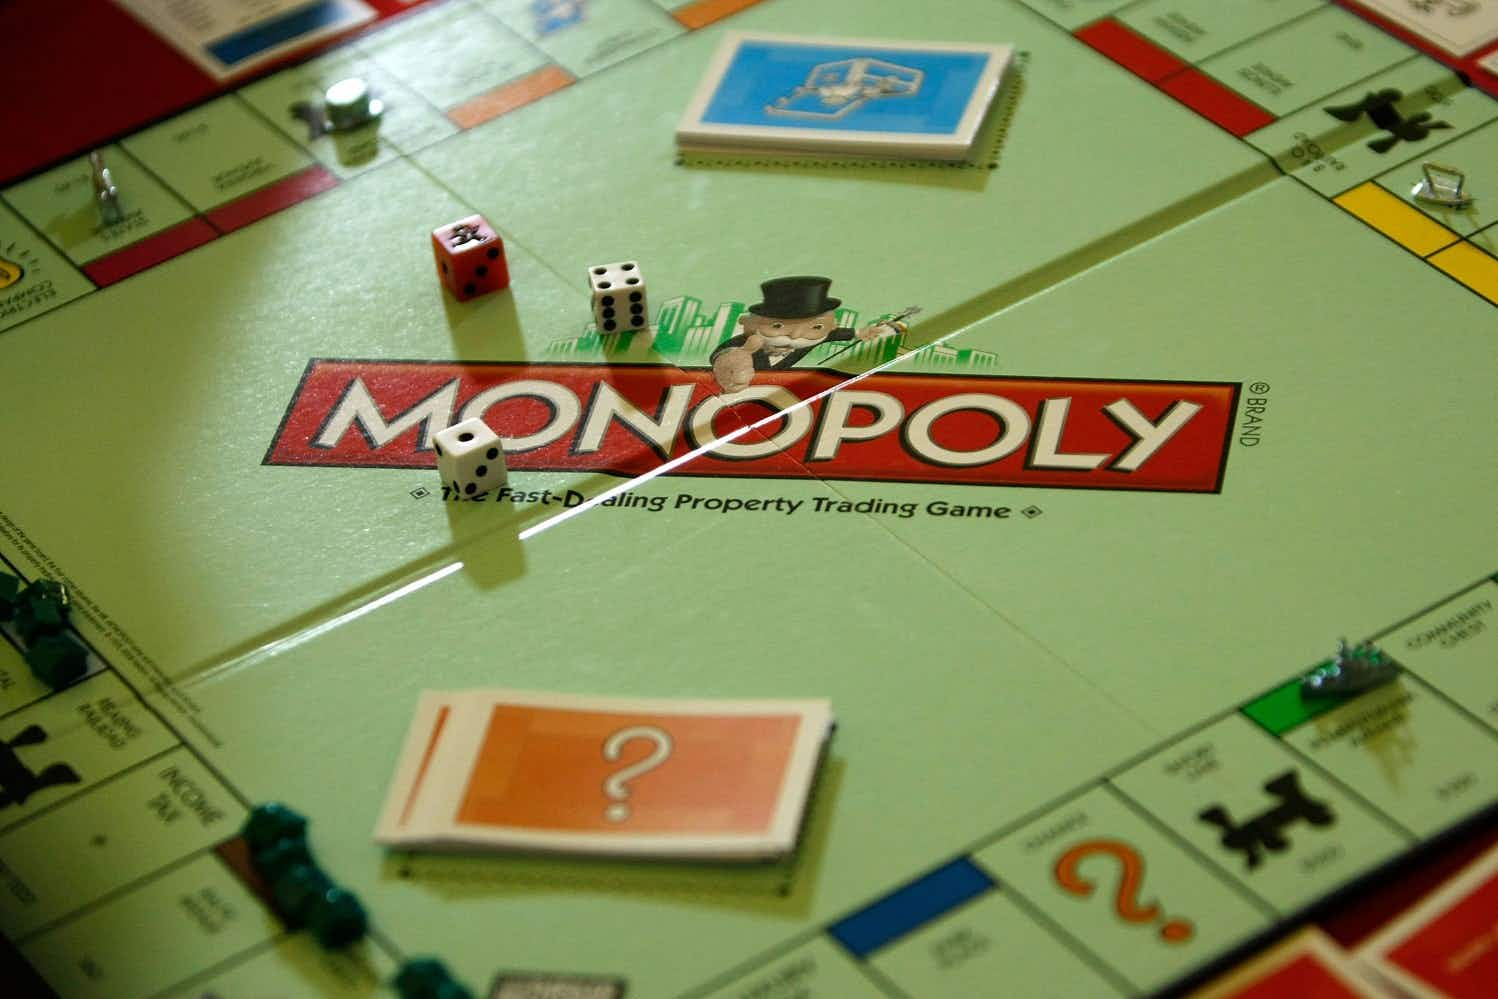 The world's first Monopoly hotel will open in Kuala Lumpur in 2019